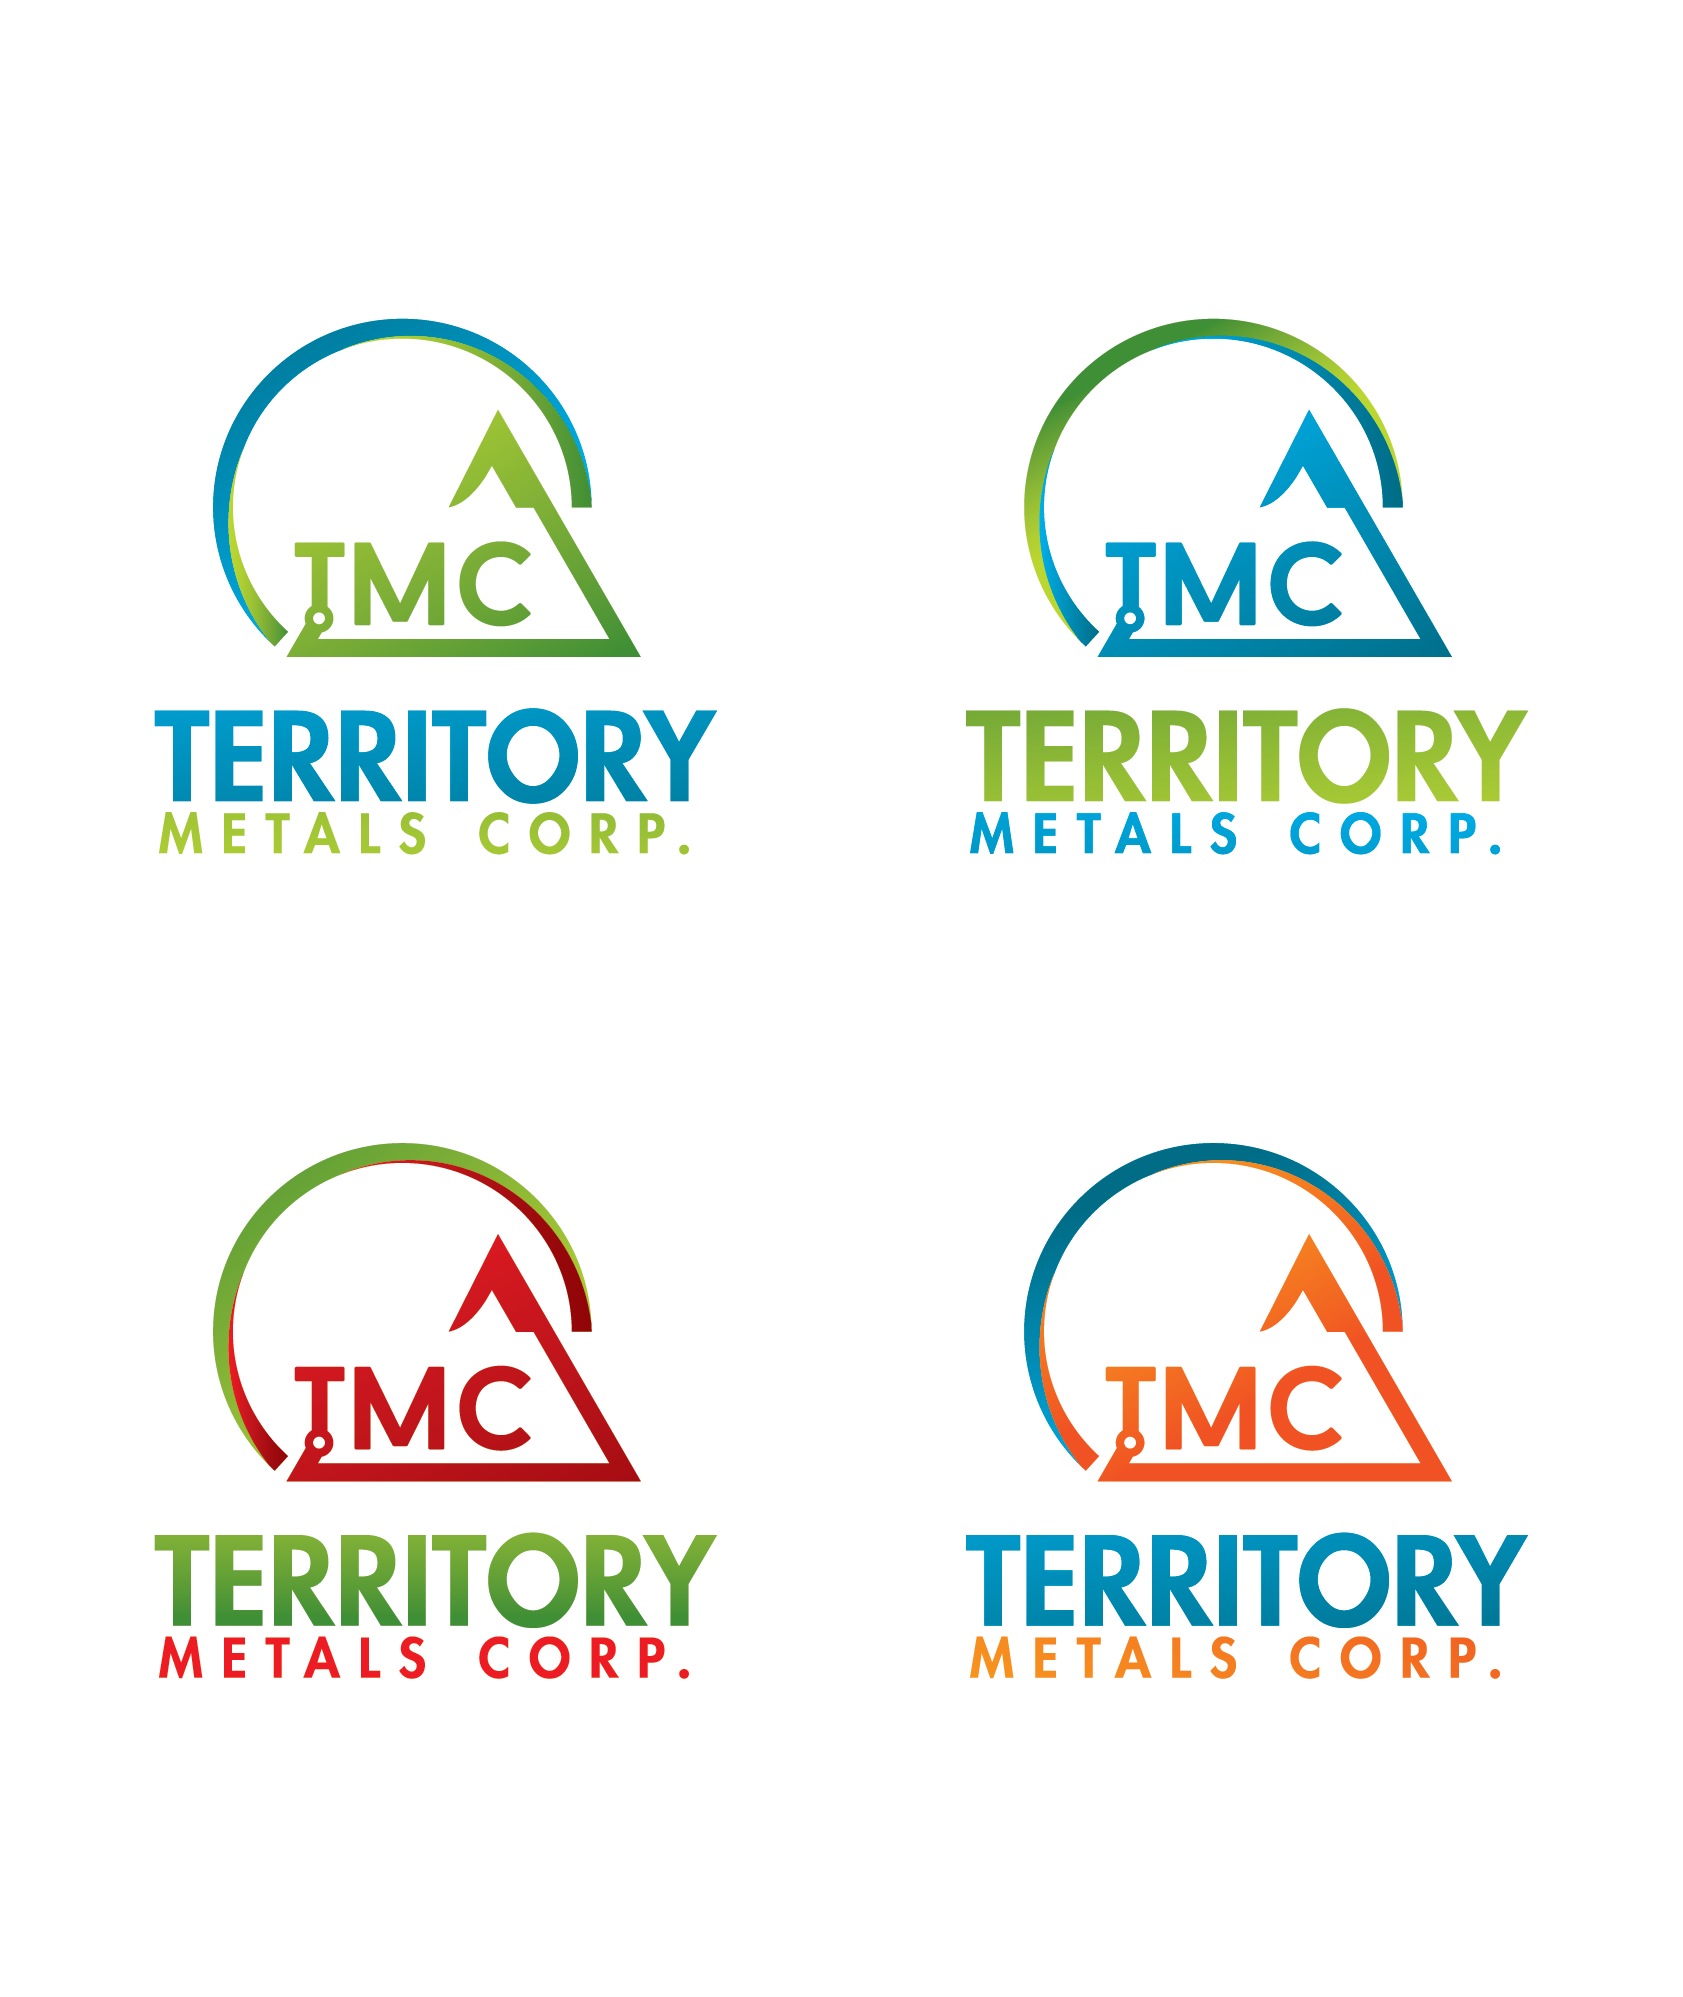 Logo Design by Prohor Ghagra - Entry No. 134 in the Logo Design Contest Unique Logo Design Wanted for Territory Metals Corp..